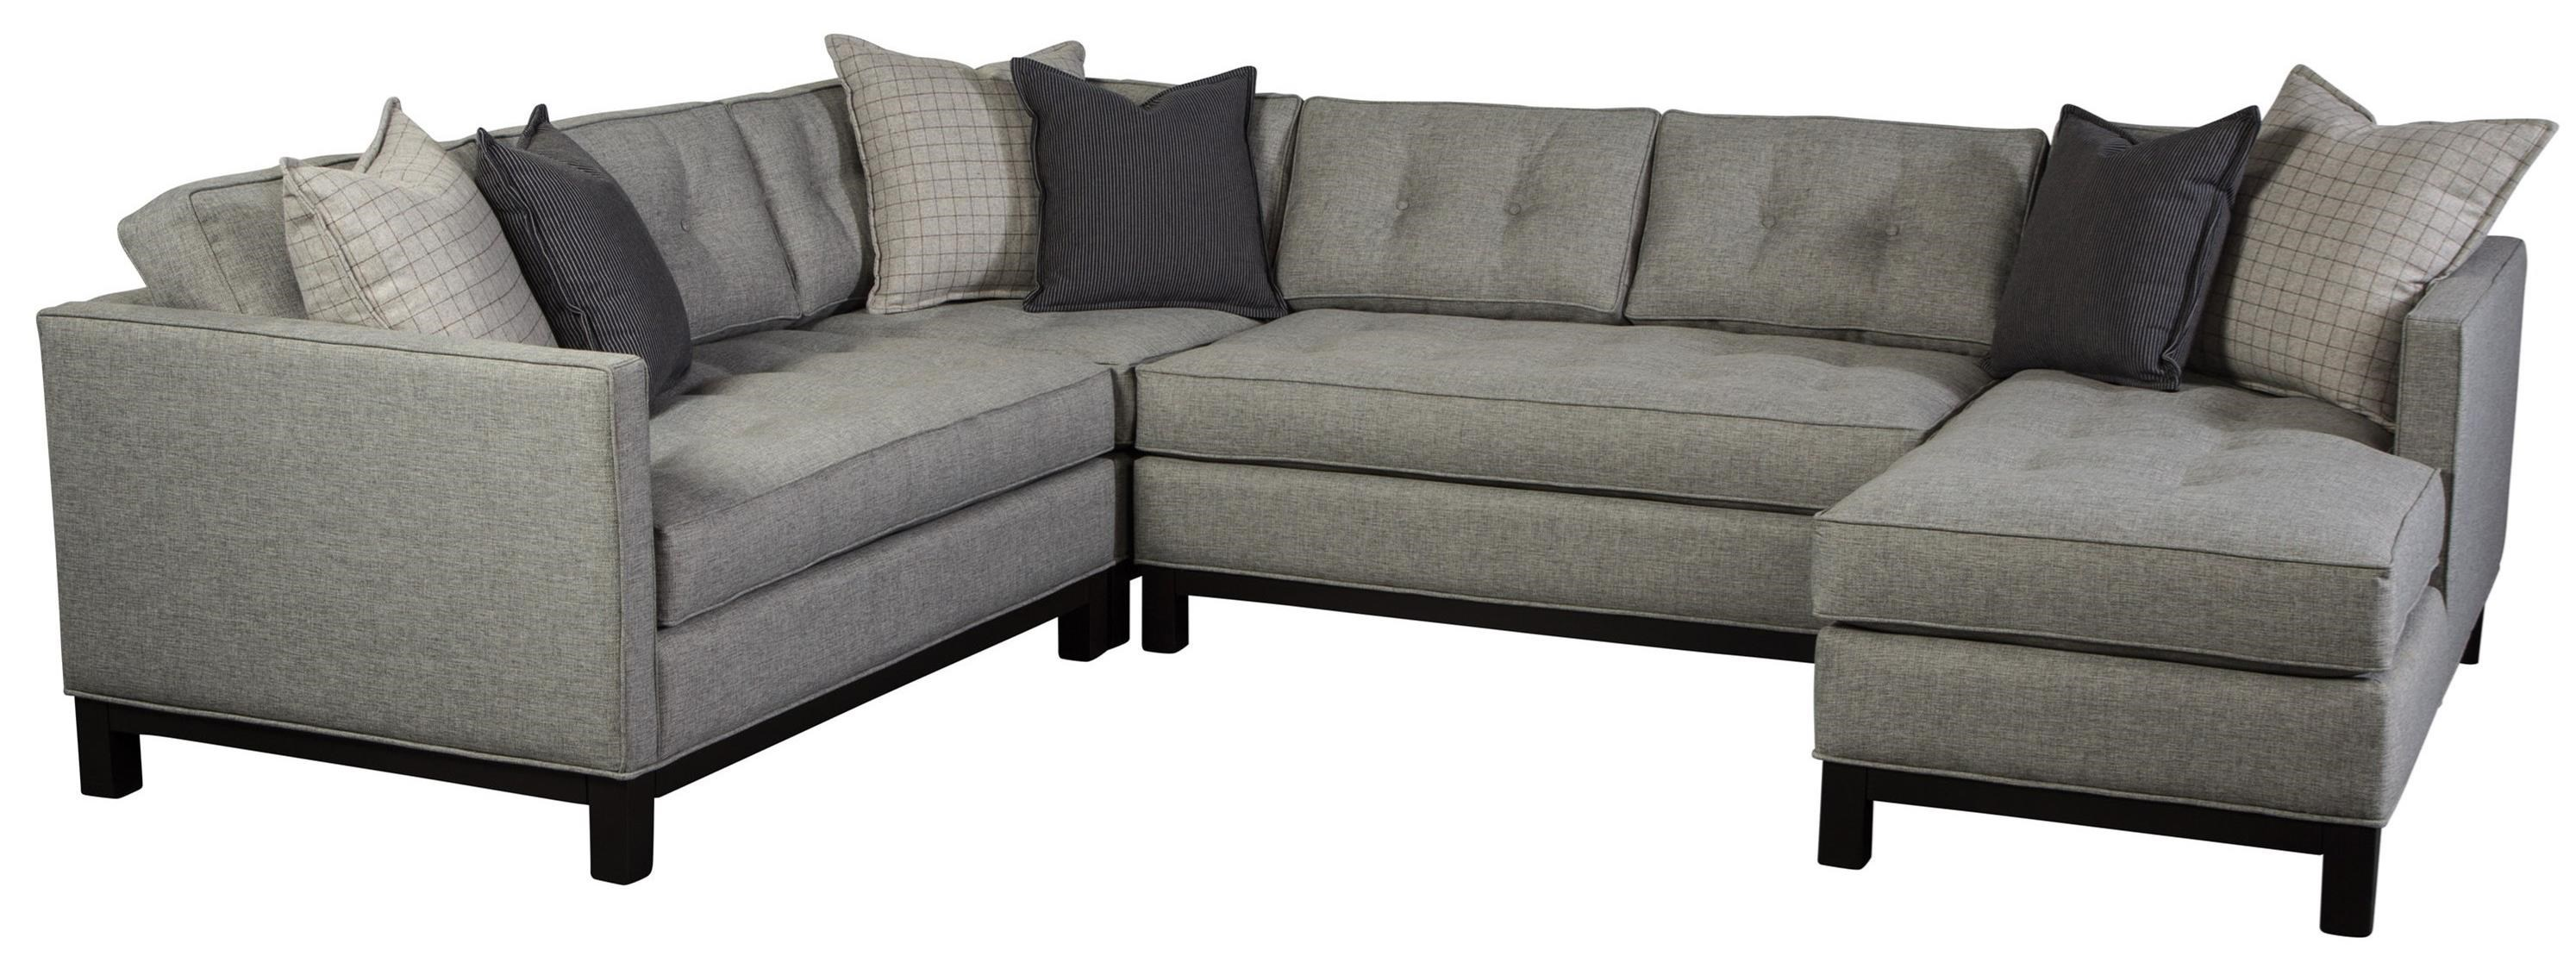 Jonathan Louis Goodwyn Contemporary Sectional Sofa with